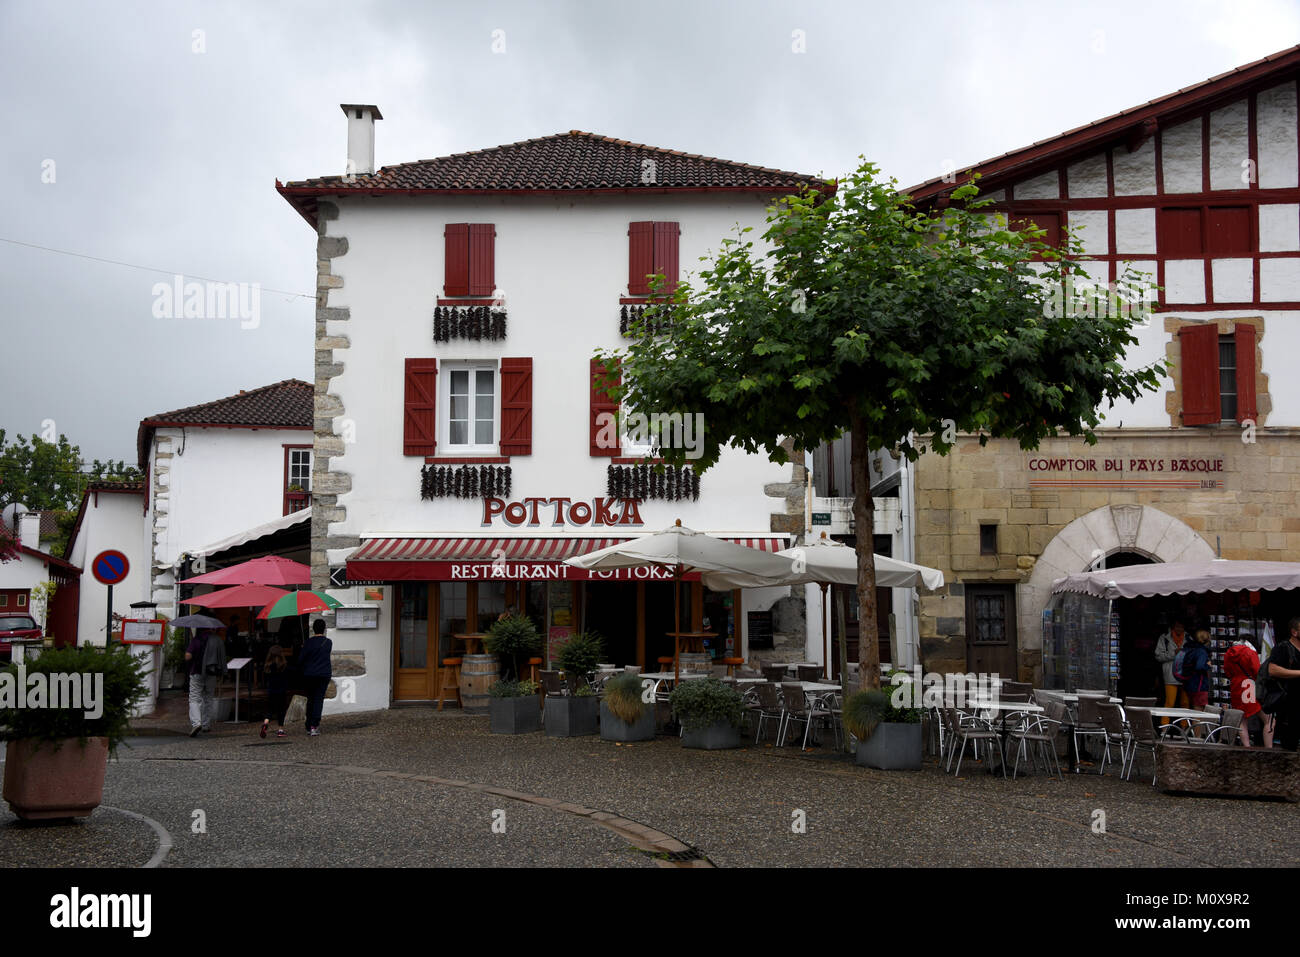 France pays basque espelette stock photos france pays for Aquitaine france cuisine